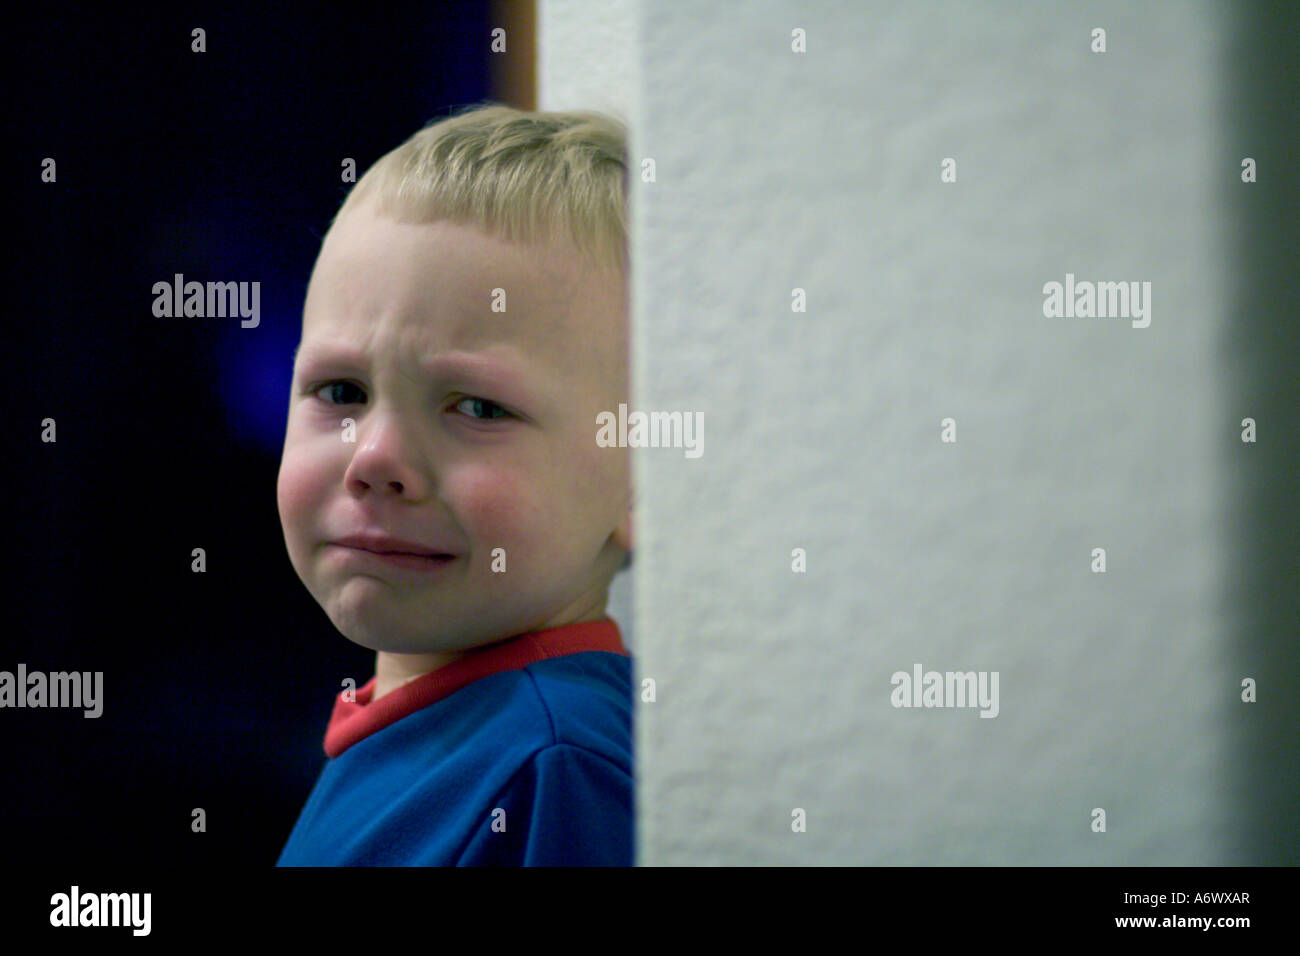 A little boy about to throw a temper tantrum - Stock Image